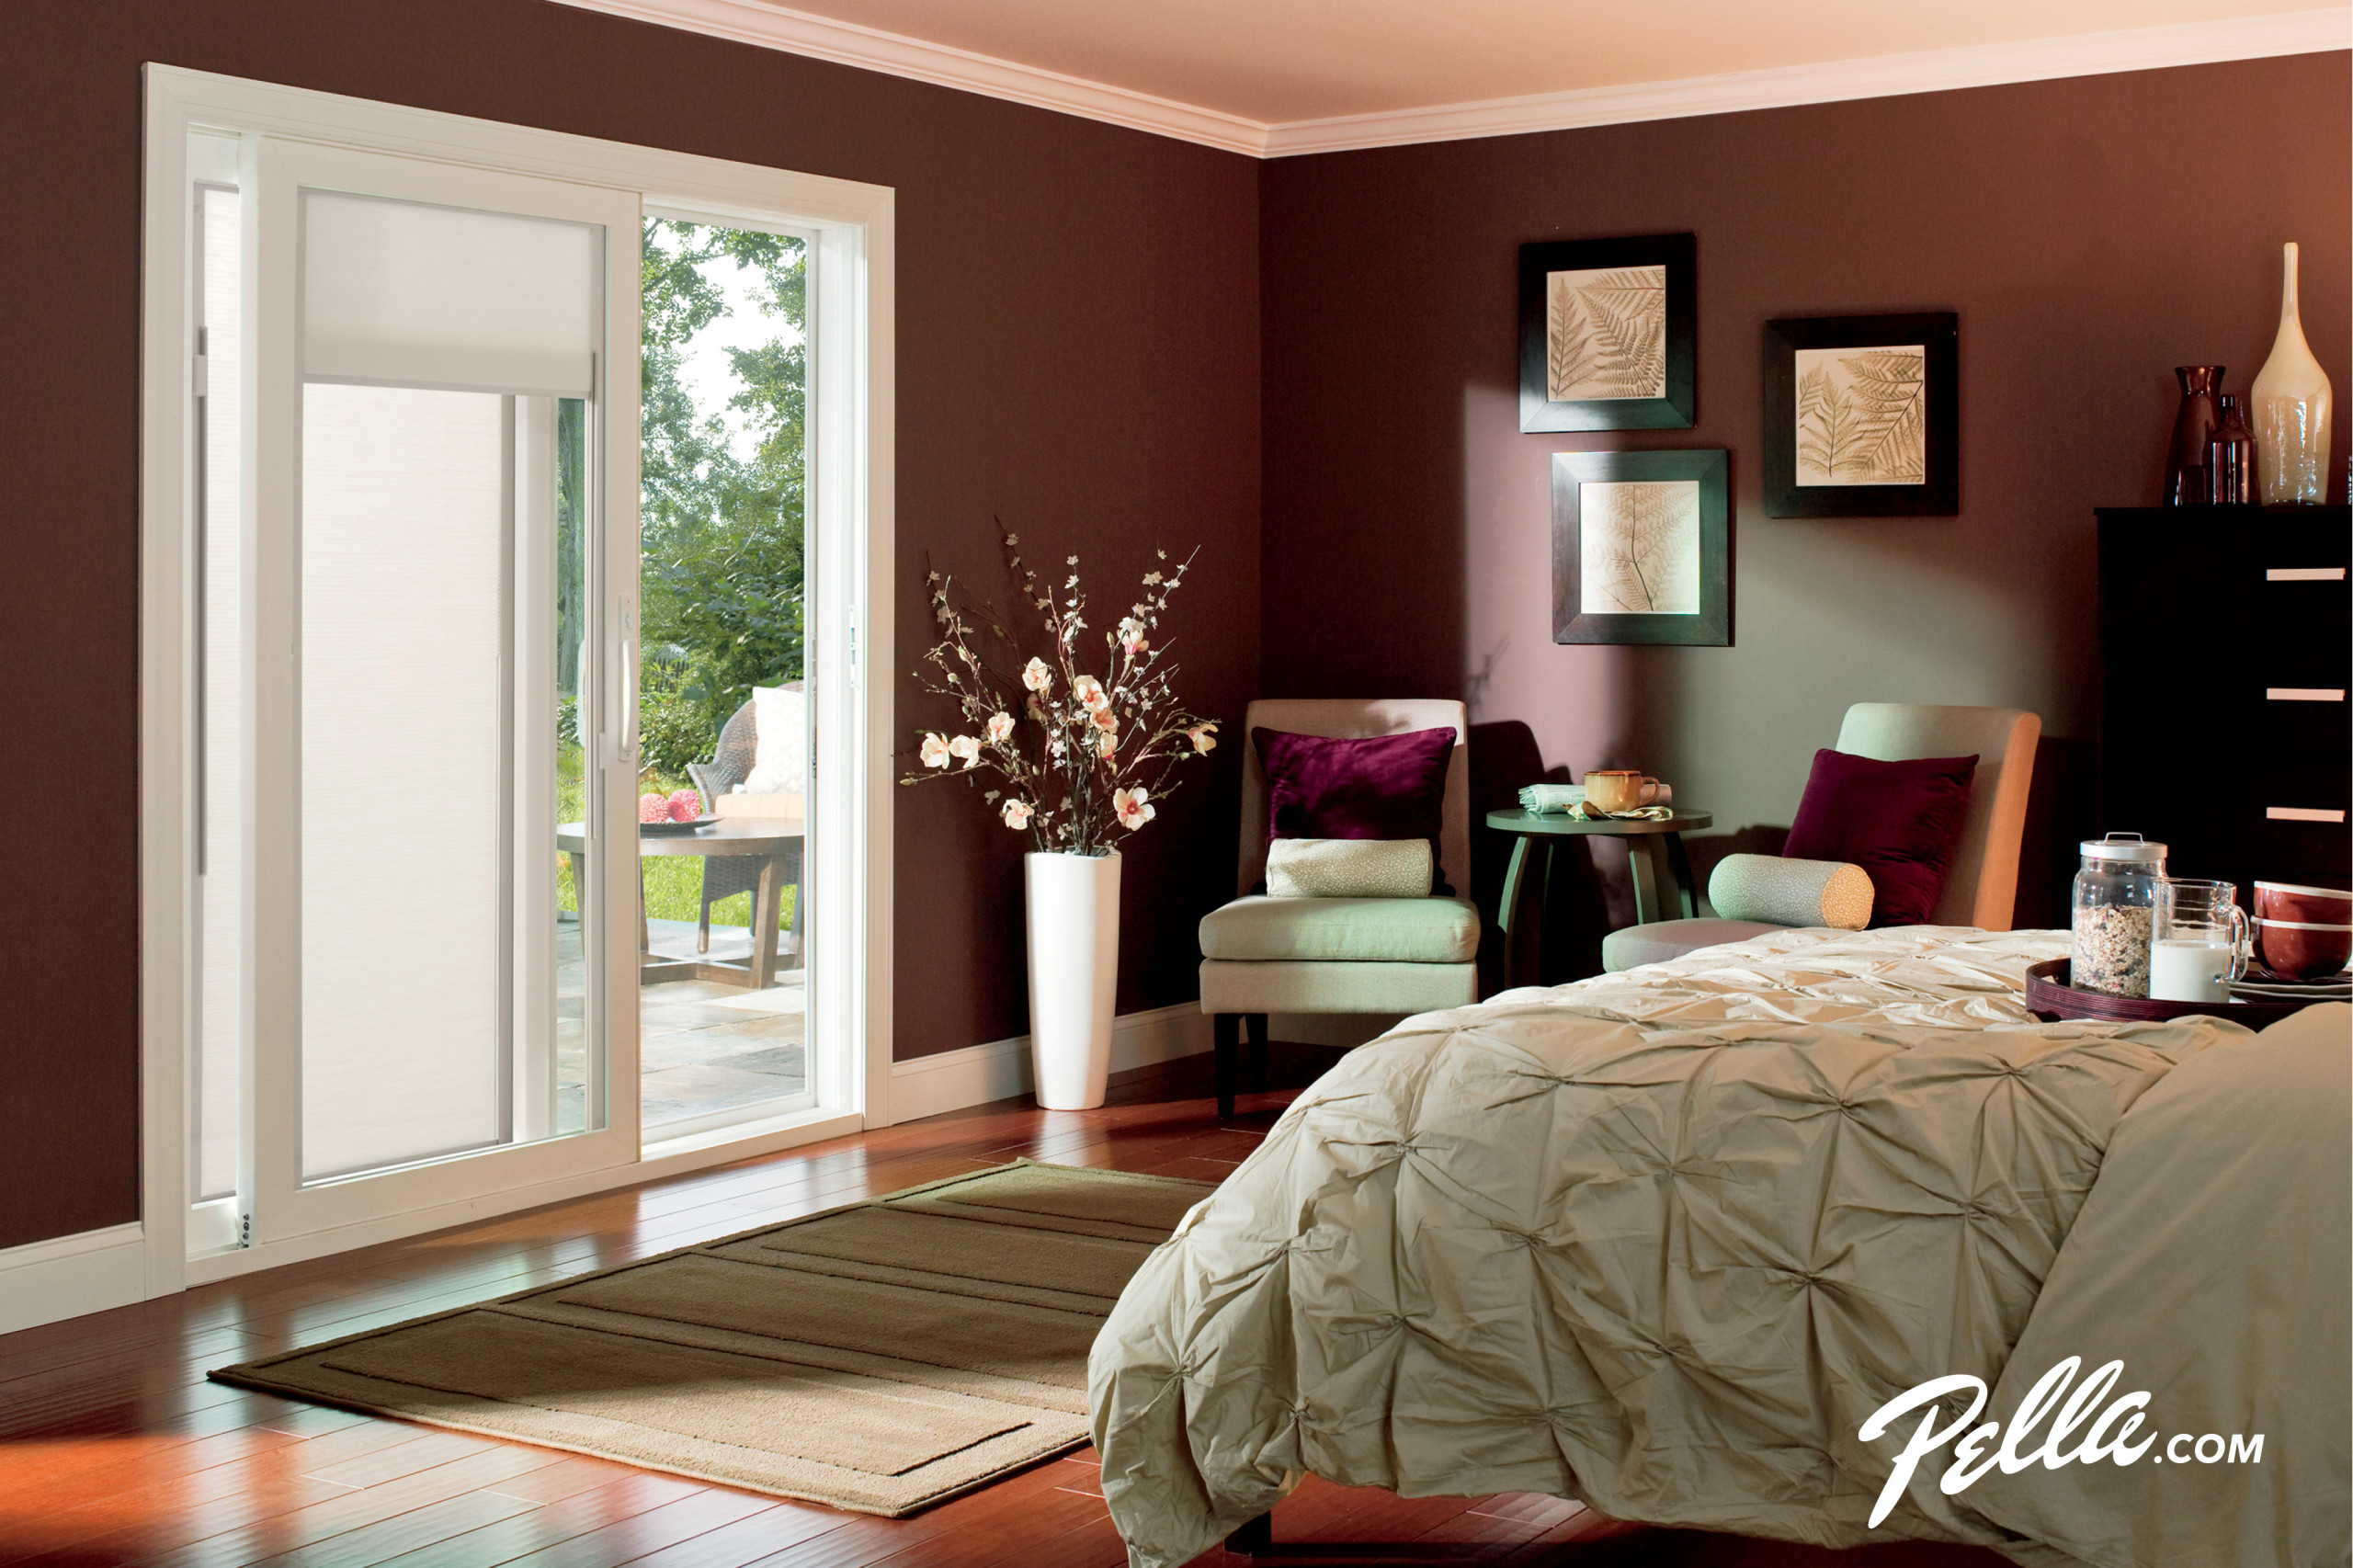 Pella Sliding Doors Houzz